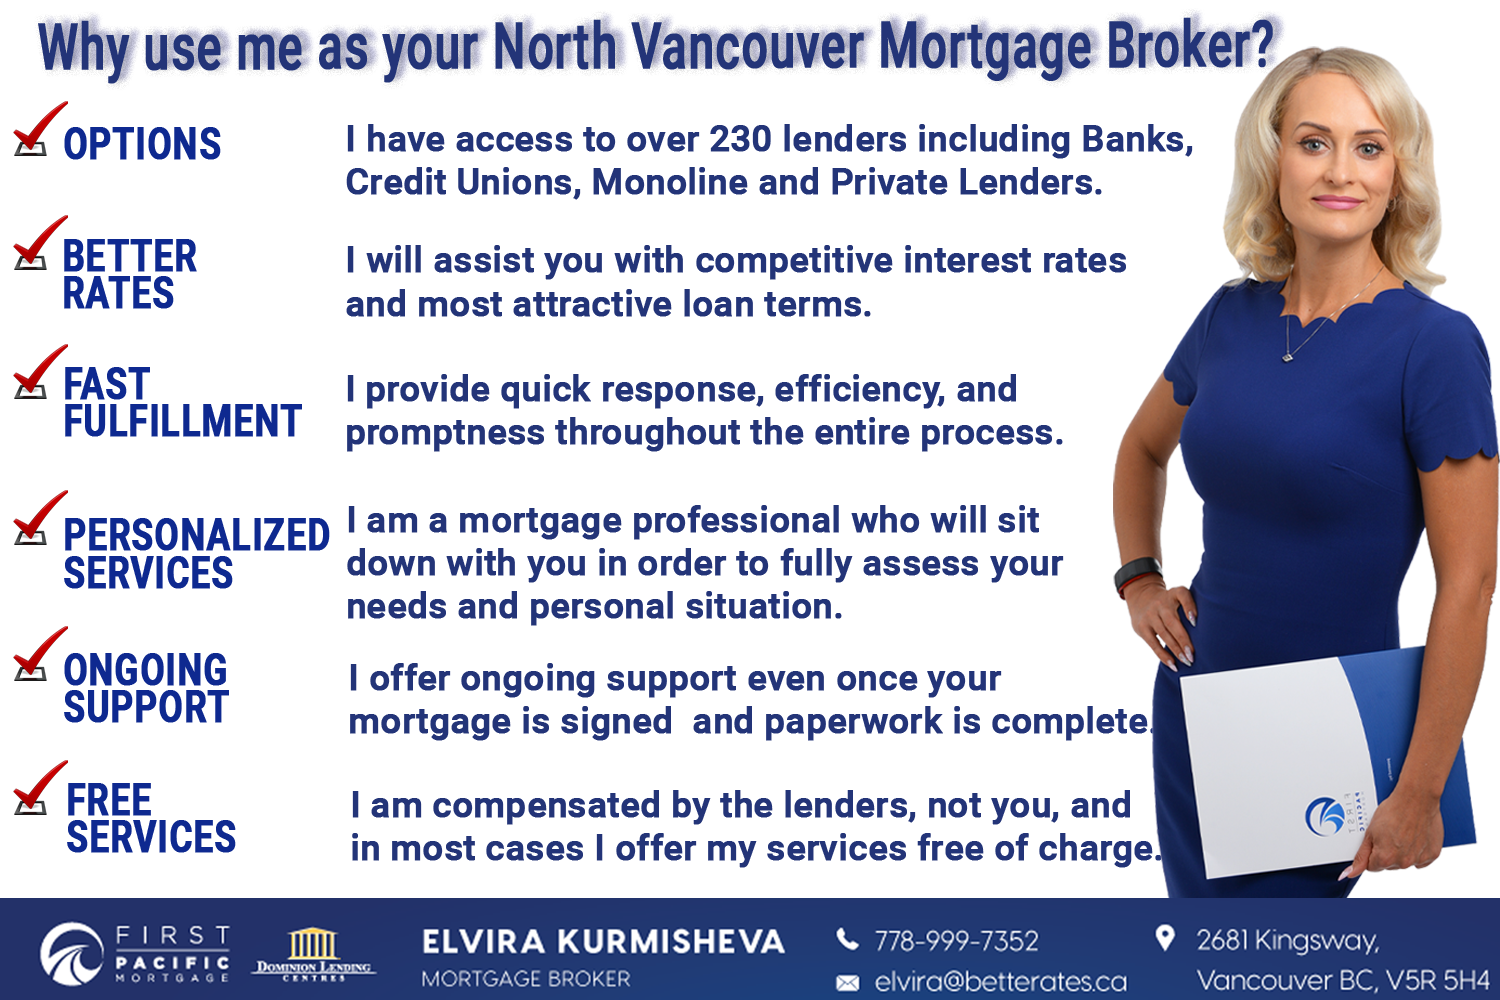 Picture of North Vancouver mortgage broker